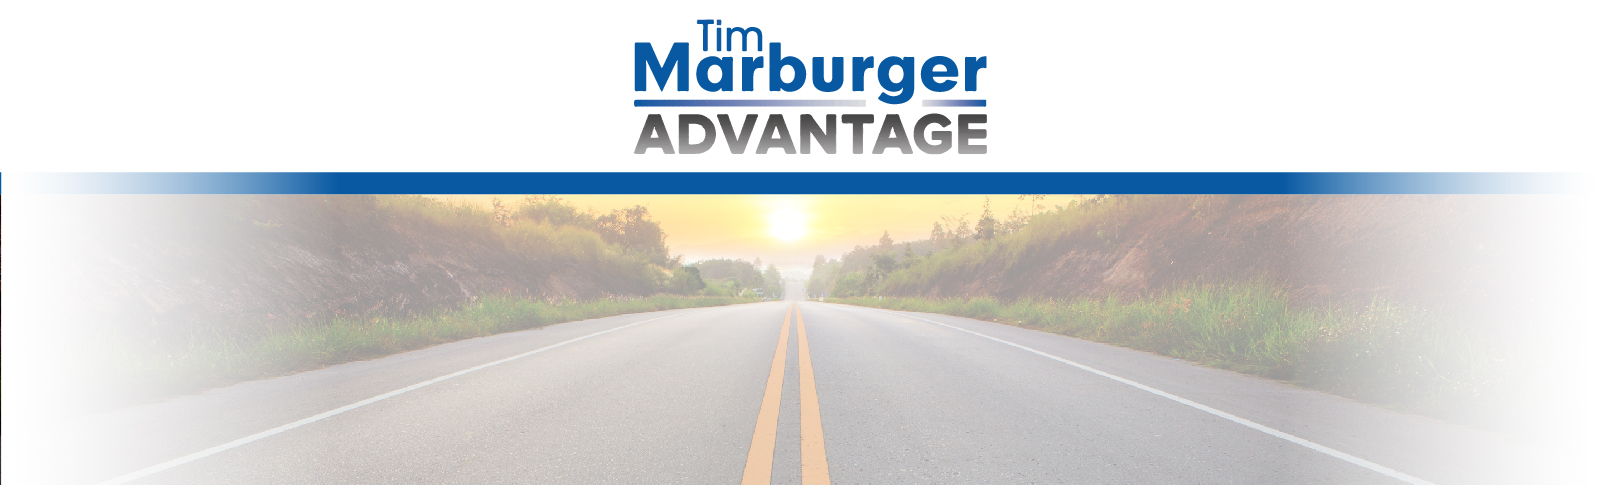 Tim Marburger Advantage